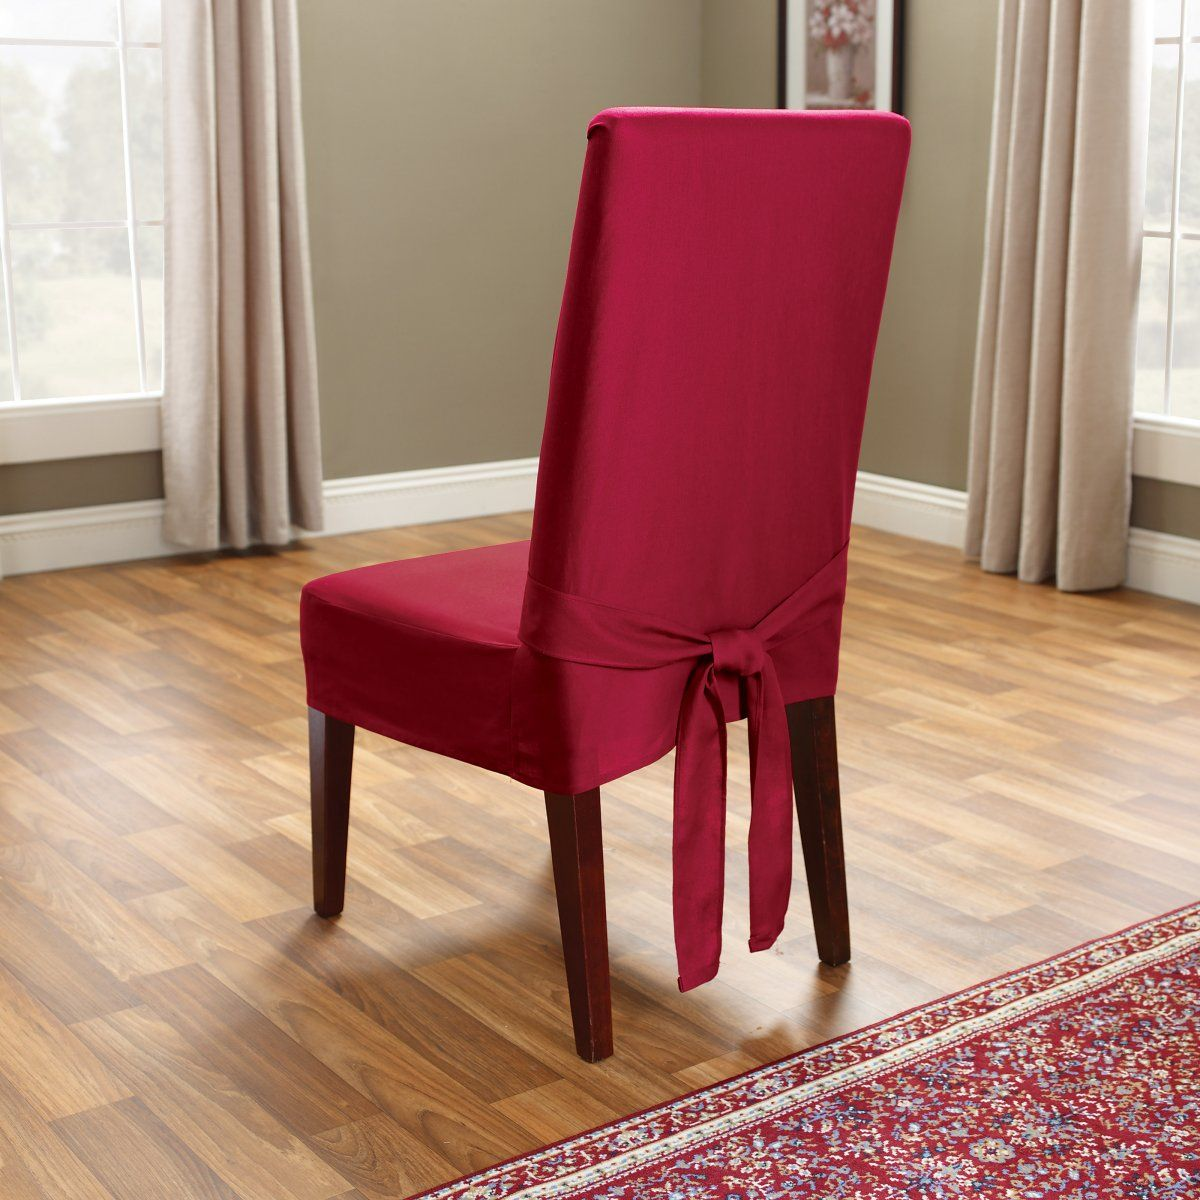 Romantic Red Slipcovers For Dining Room Chairs With Admirable